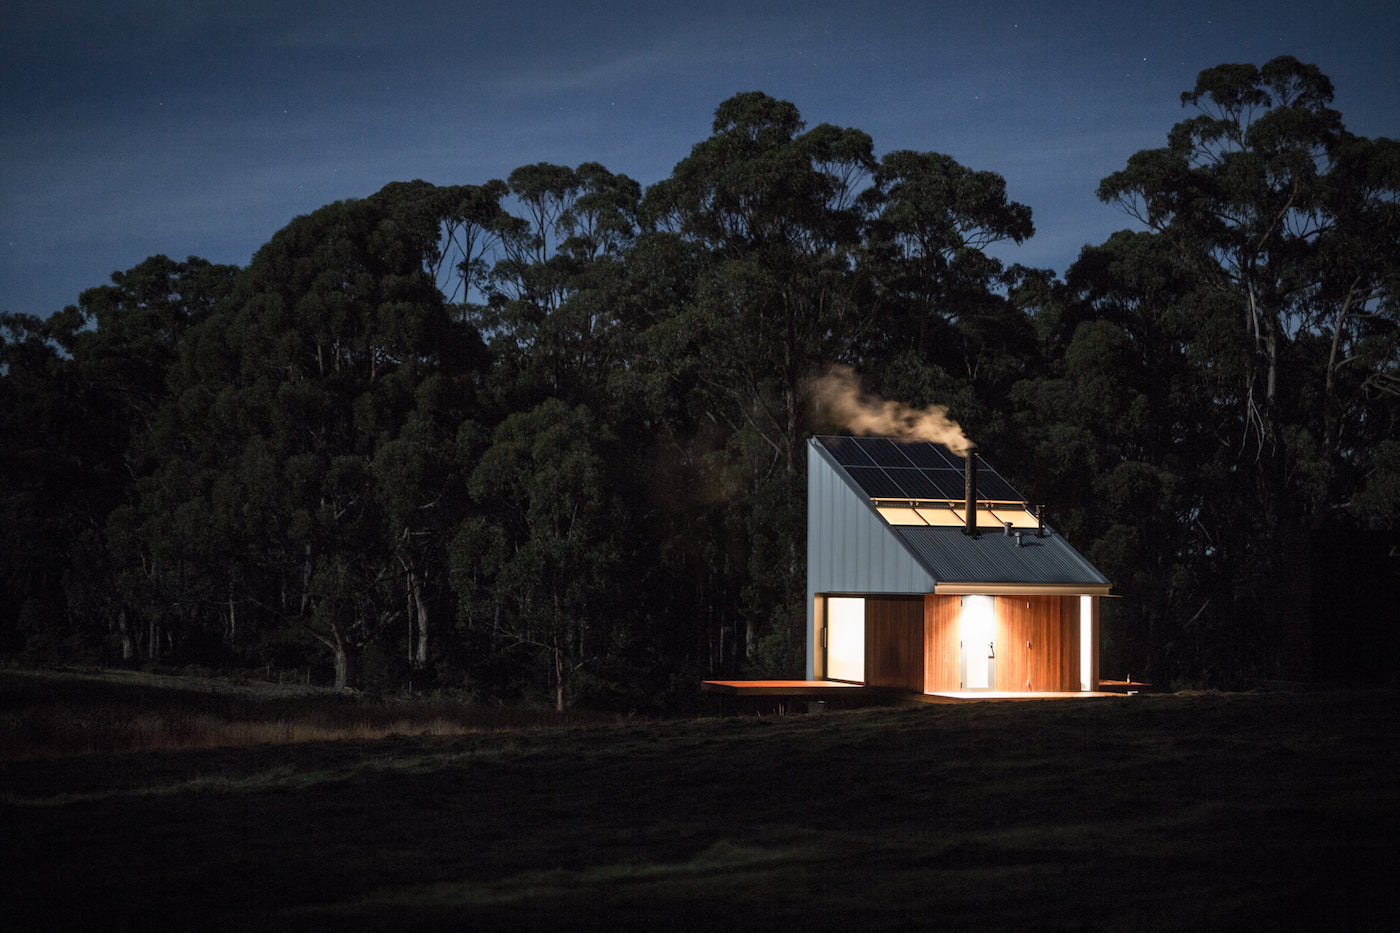 A cabin on Bruny Island (Tasmania, Australia) by night. (Photo: Rob Maver)